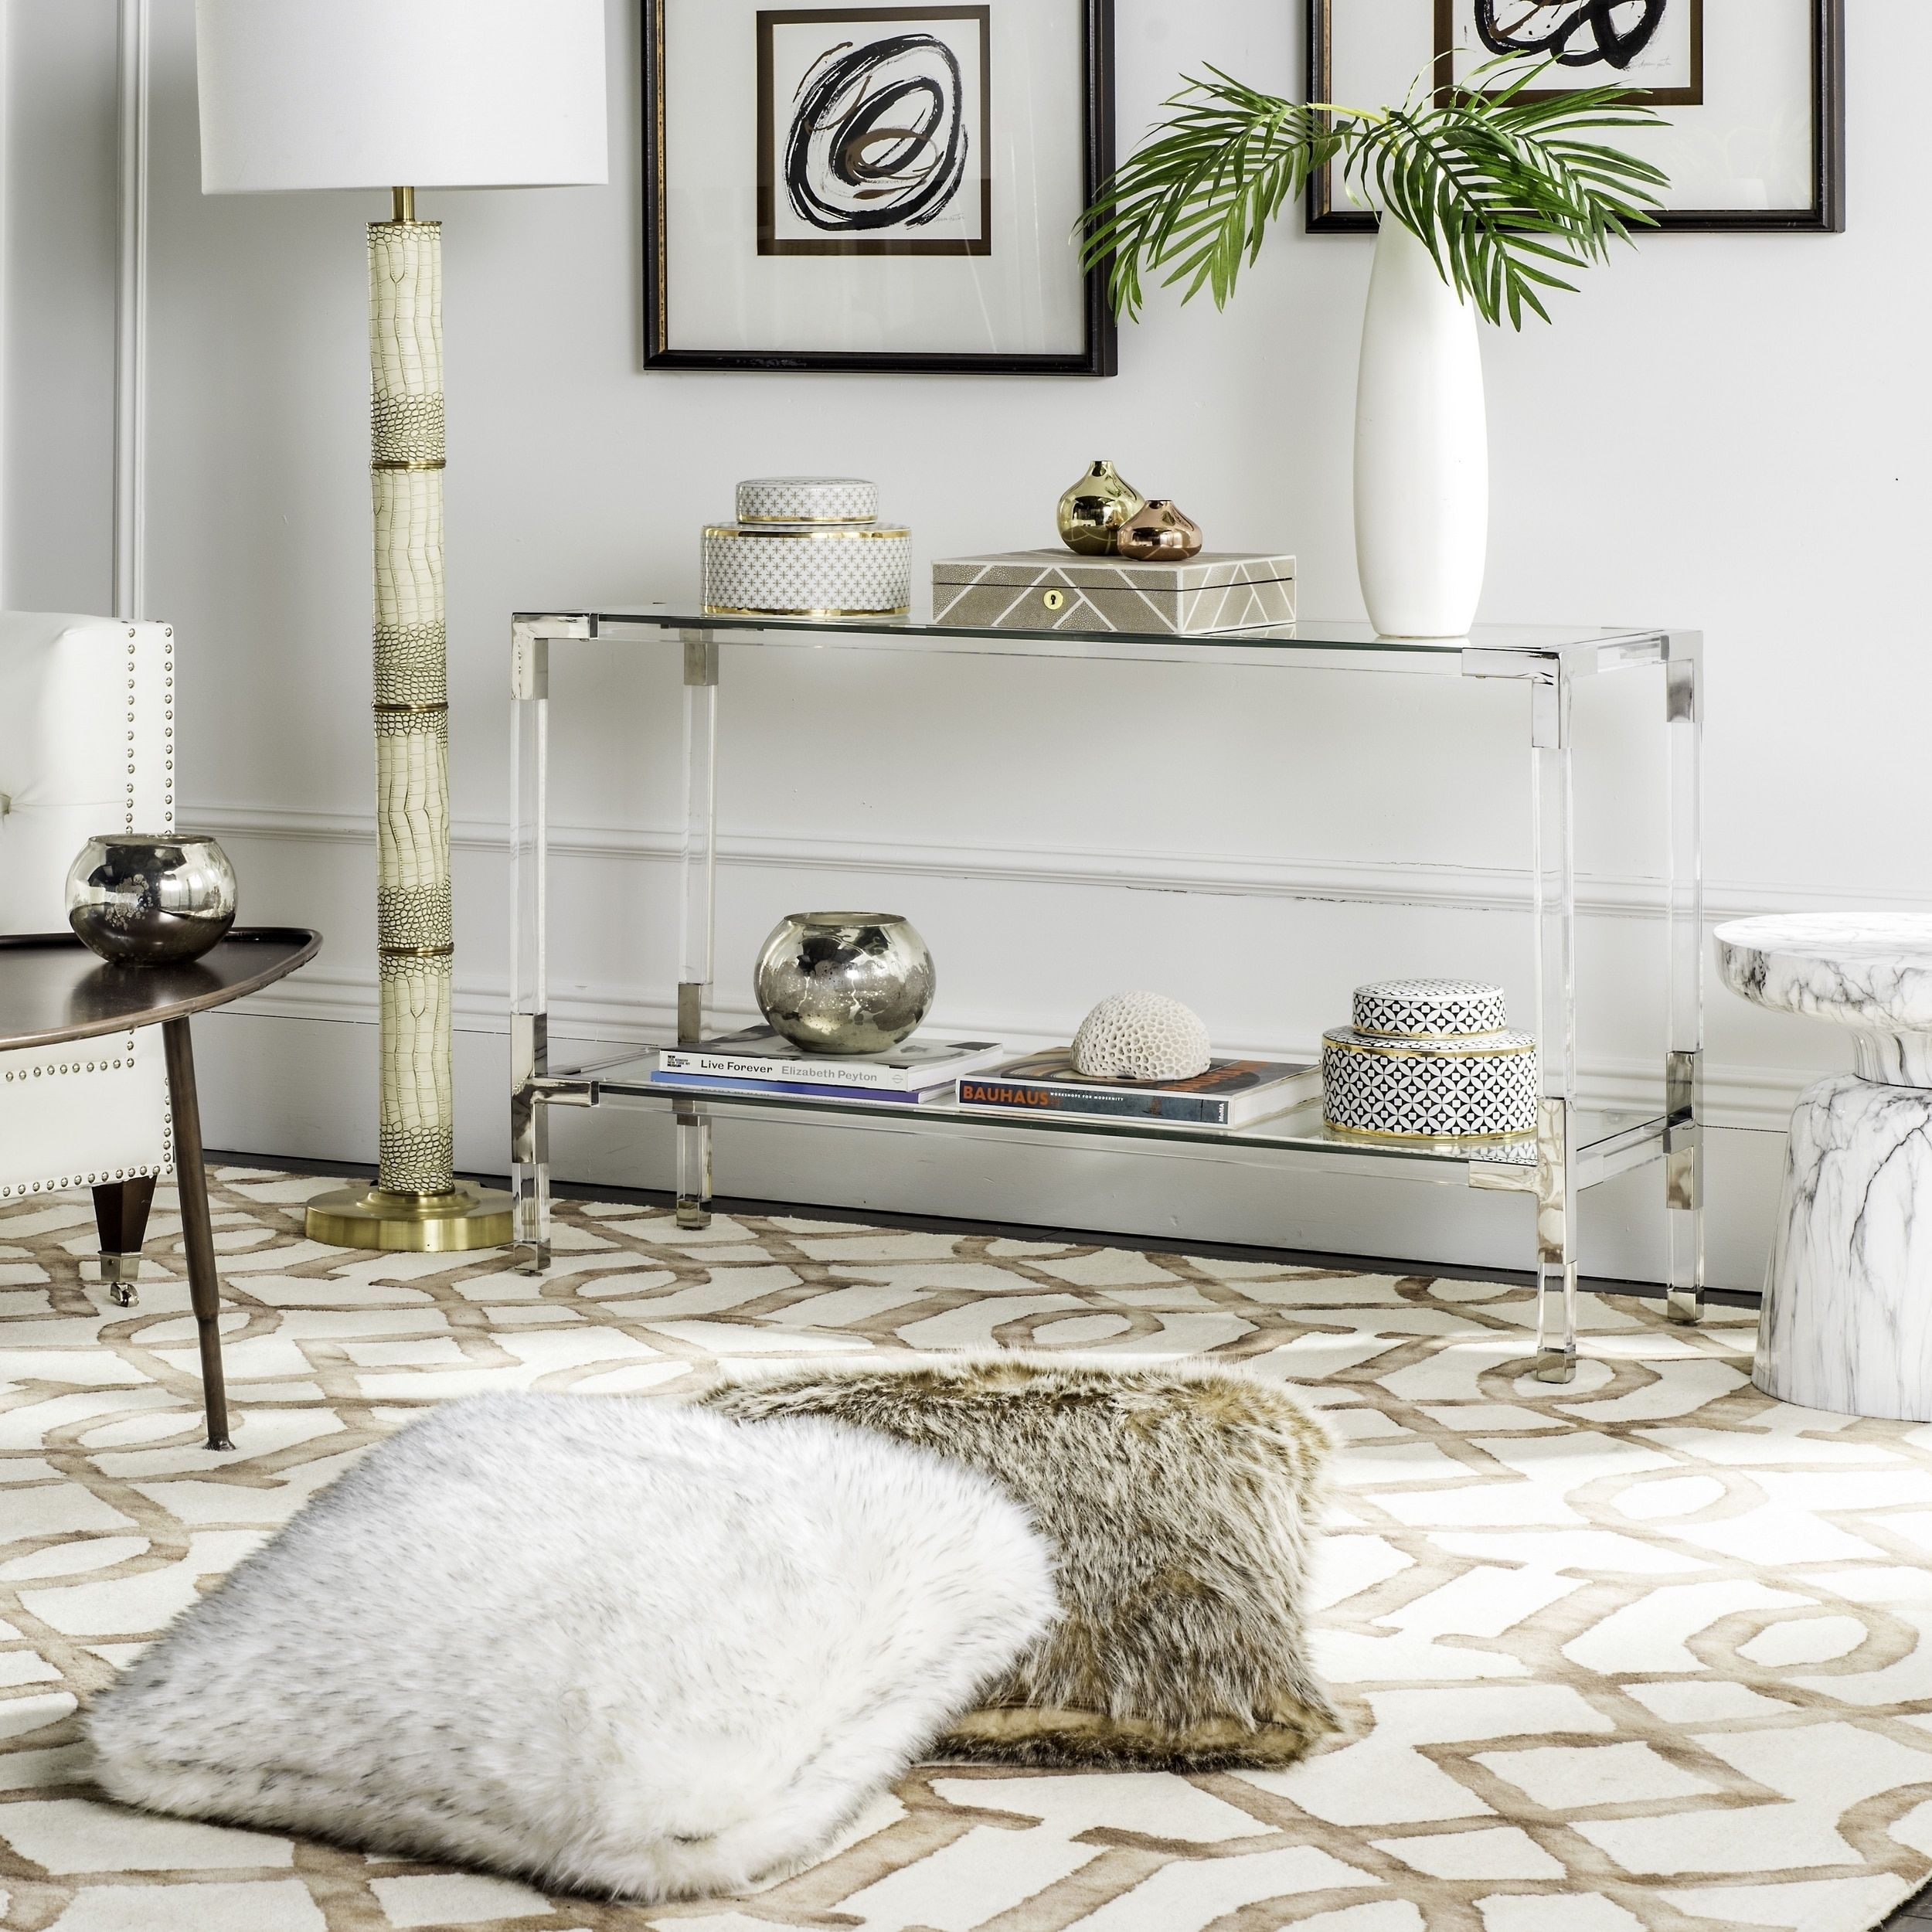 Safavieh High-Line Collection Arverne Acrylic Console Table